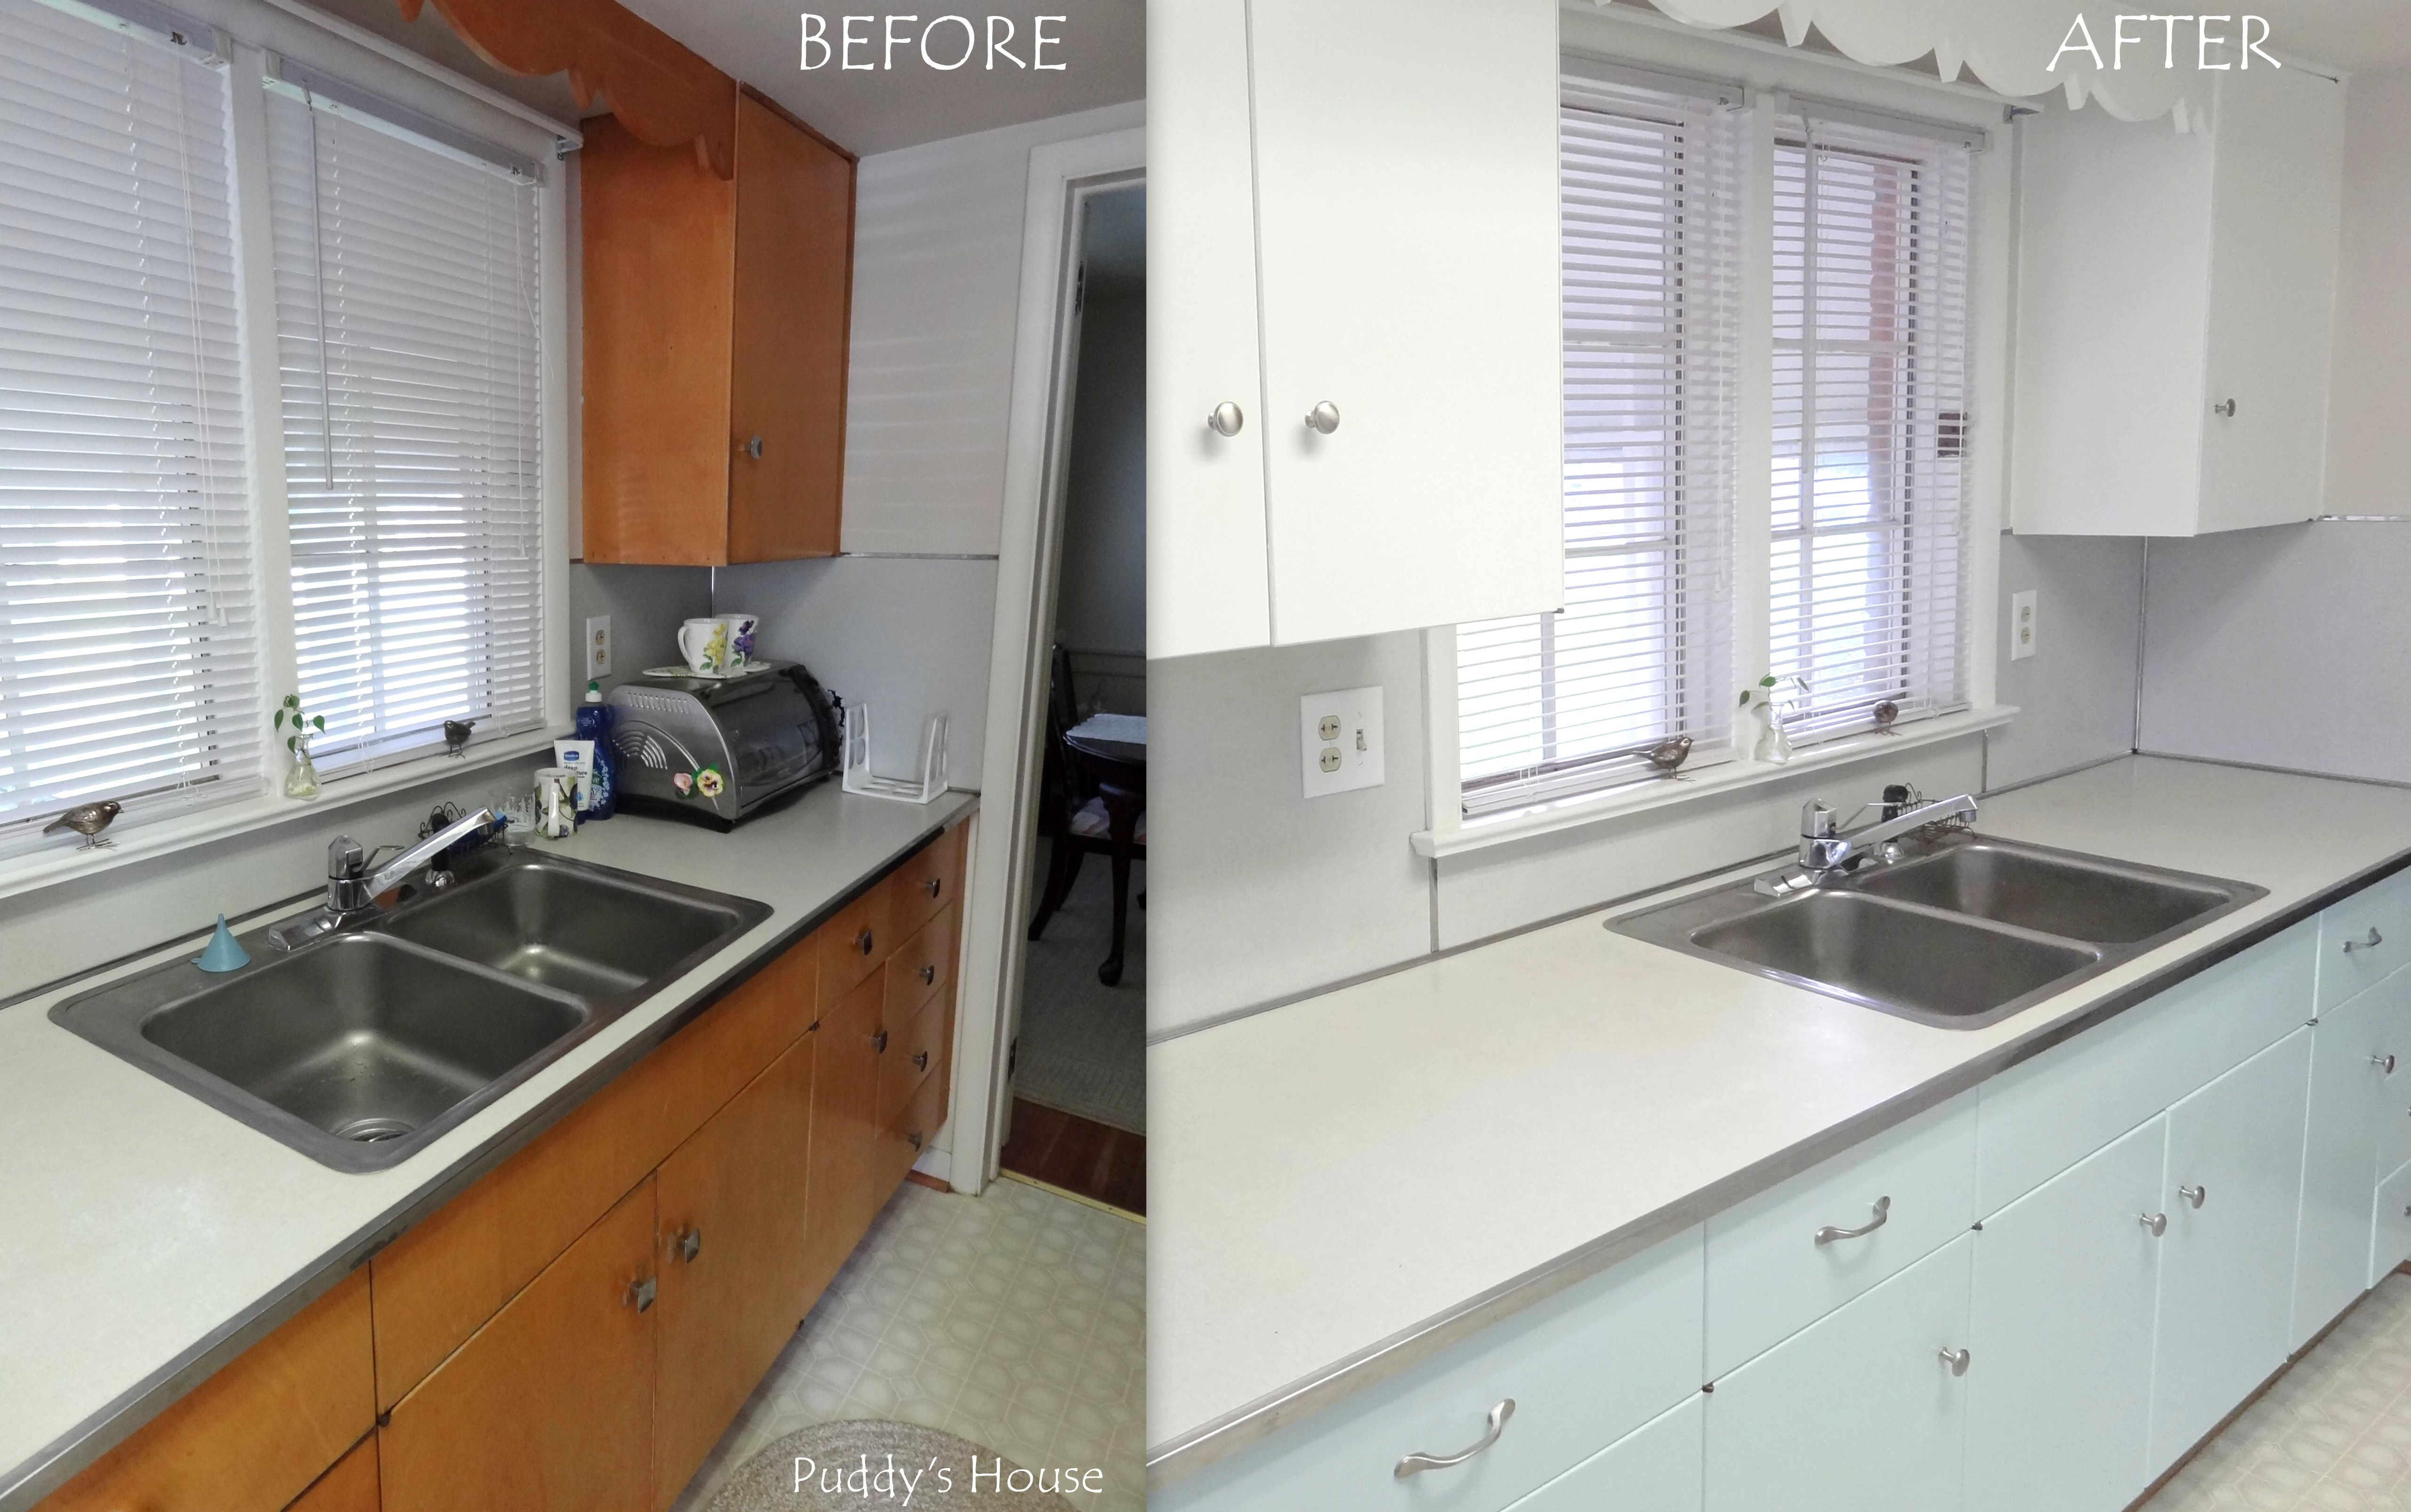 painted kitchen cabinets before and after kitchen makeover puddy s house 9051